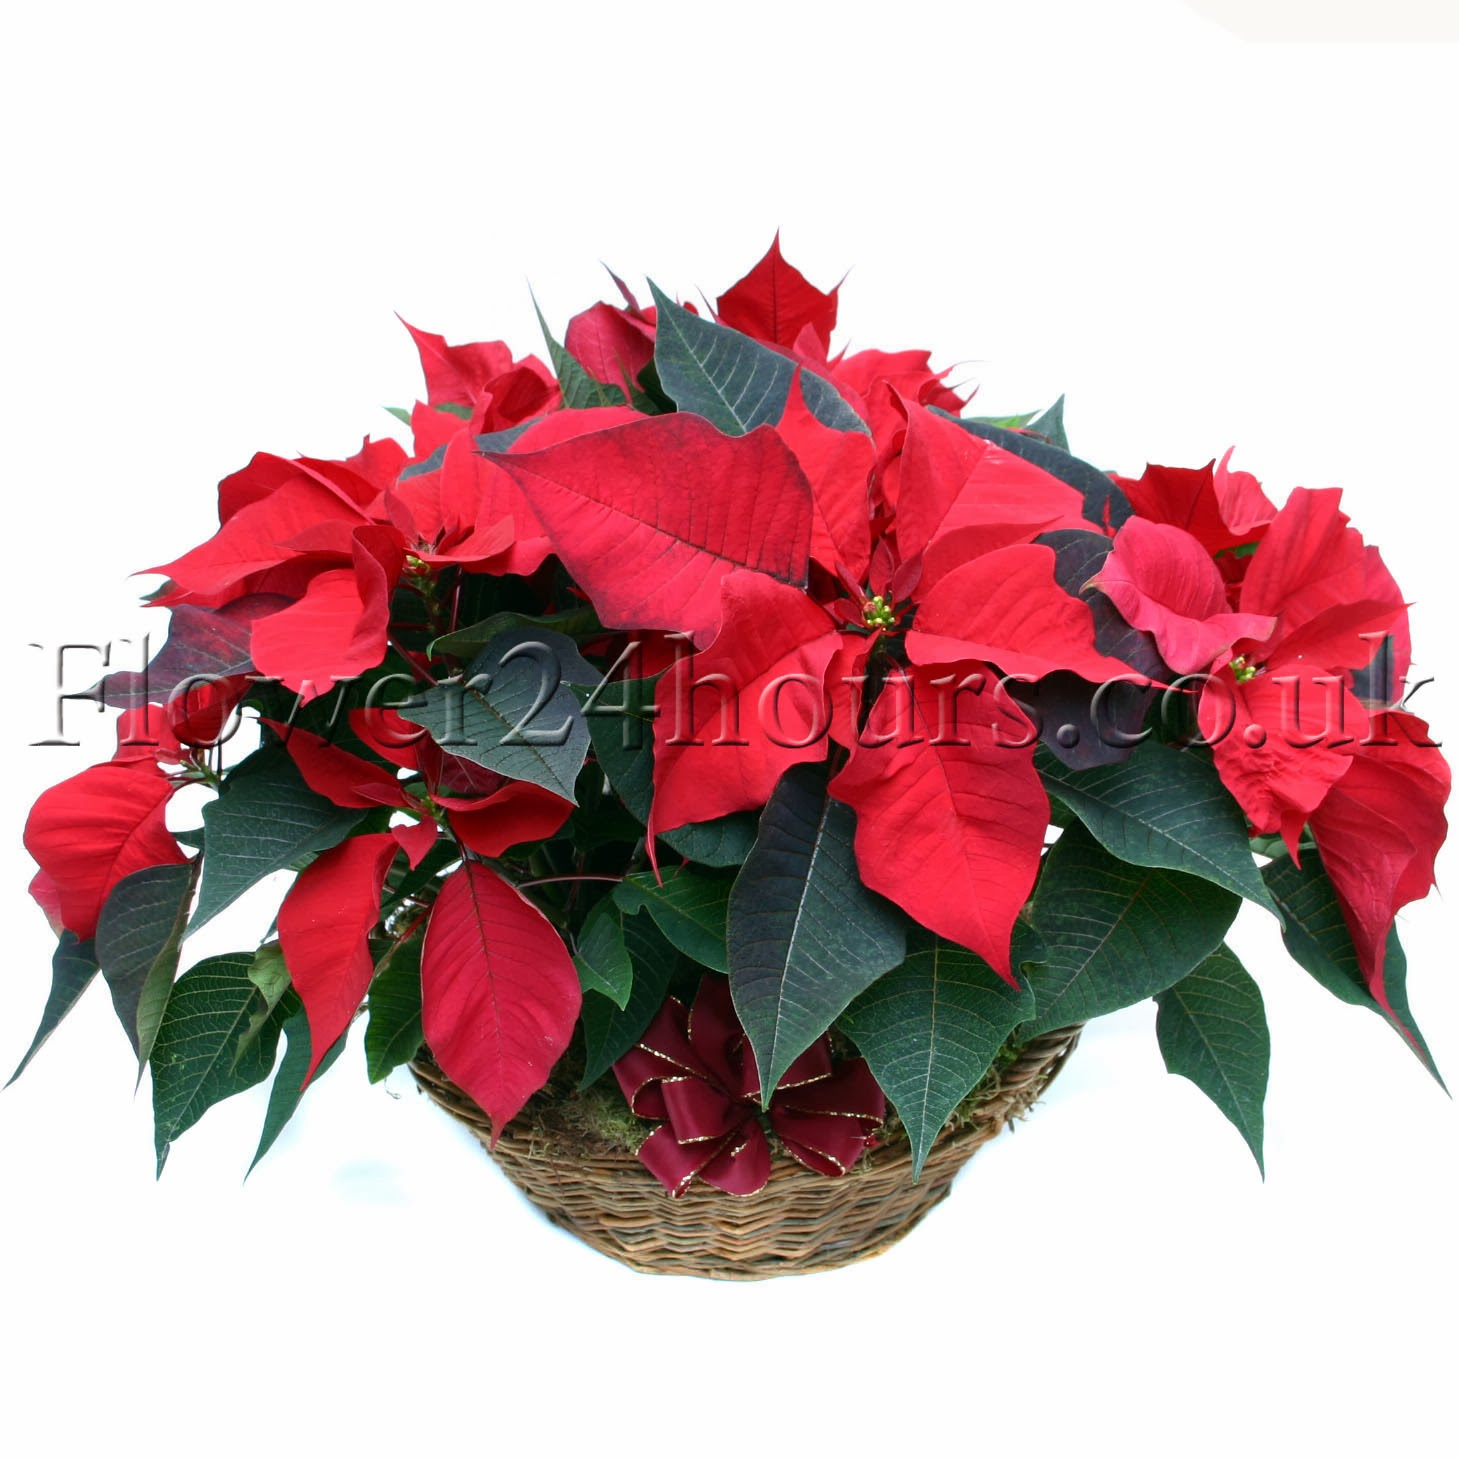 London Flower Delivery Same Day By Flowers24hours Co